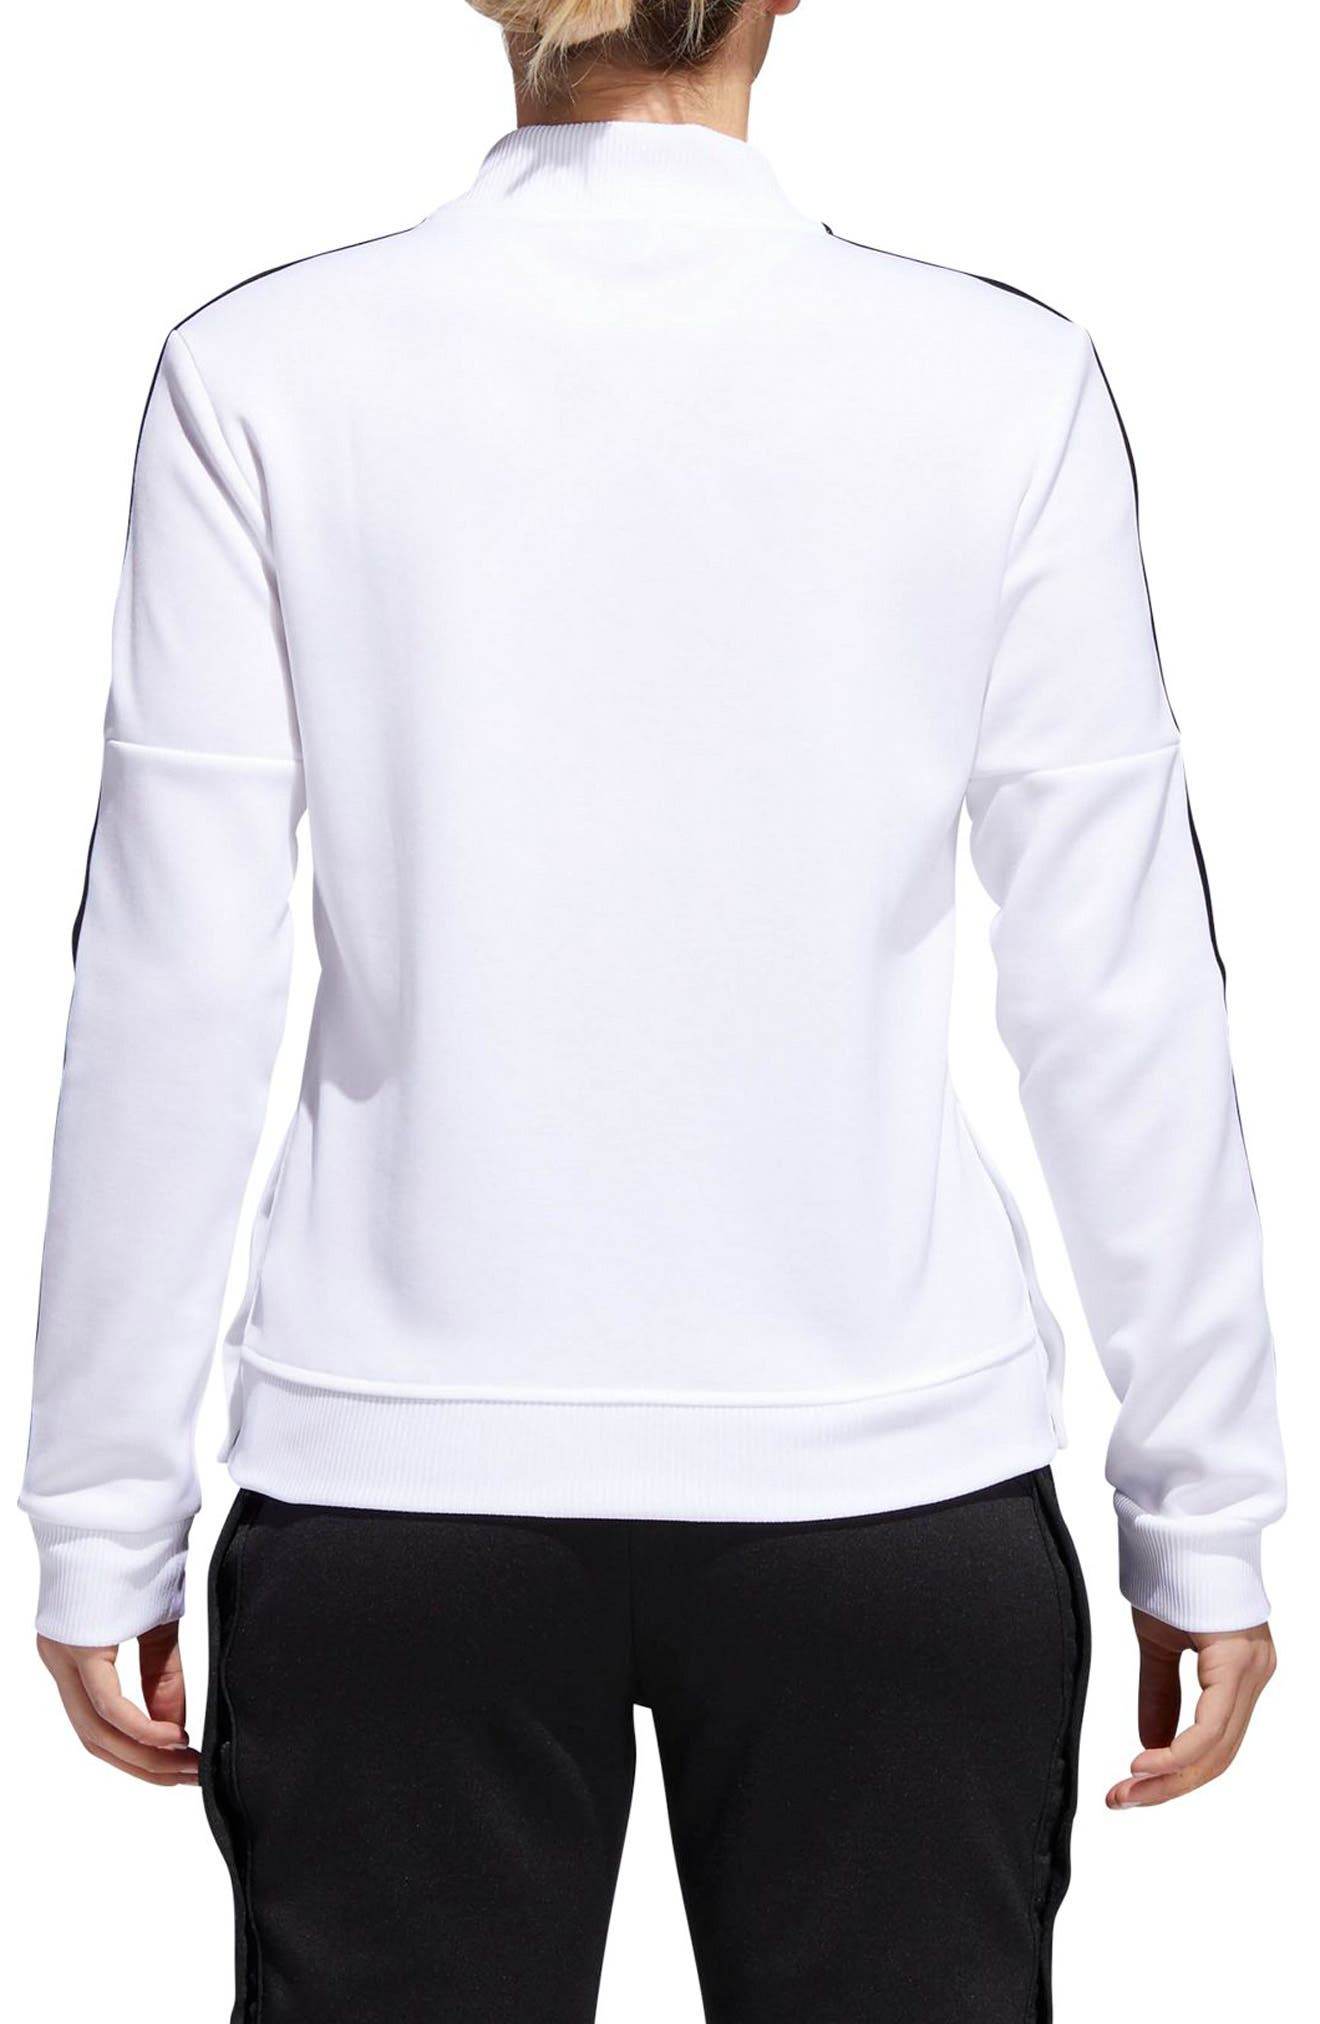 Tricot Snap It Track Jacket,                             Alternate thumbnail 2, color,